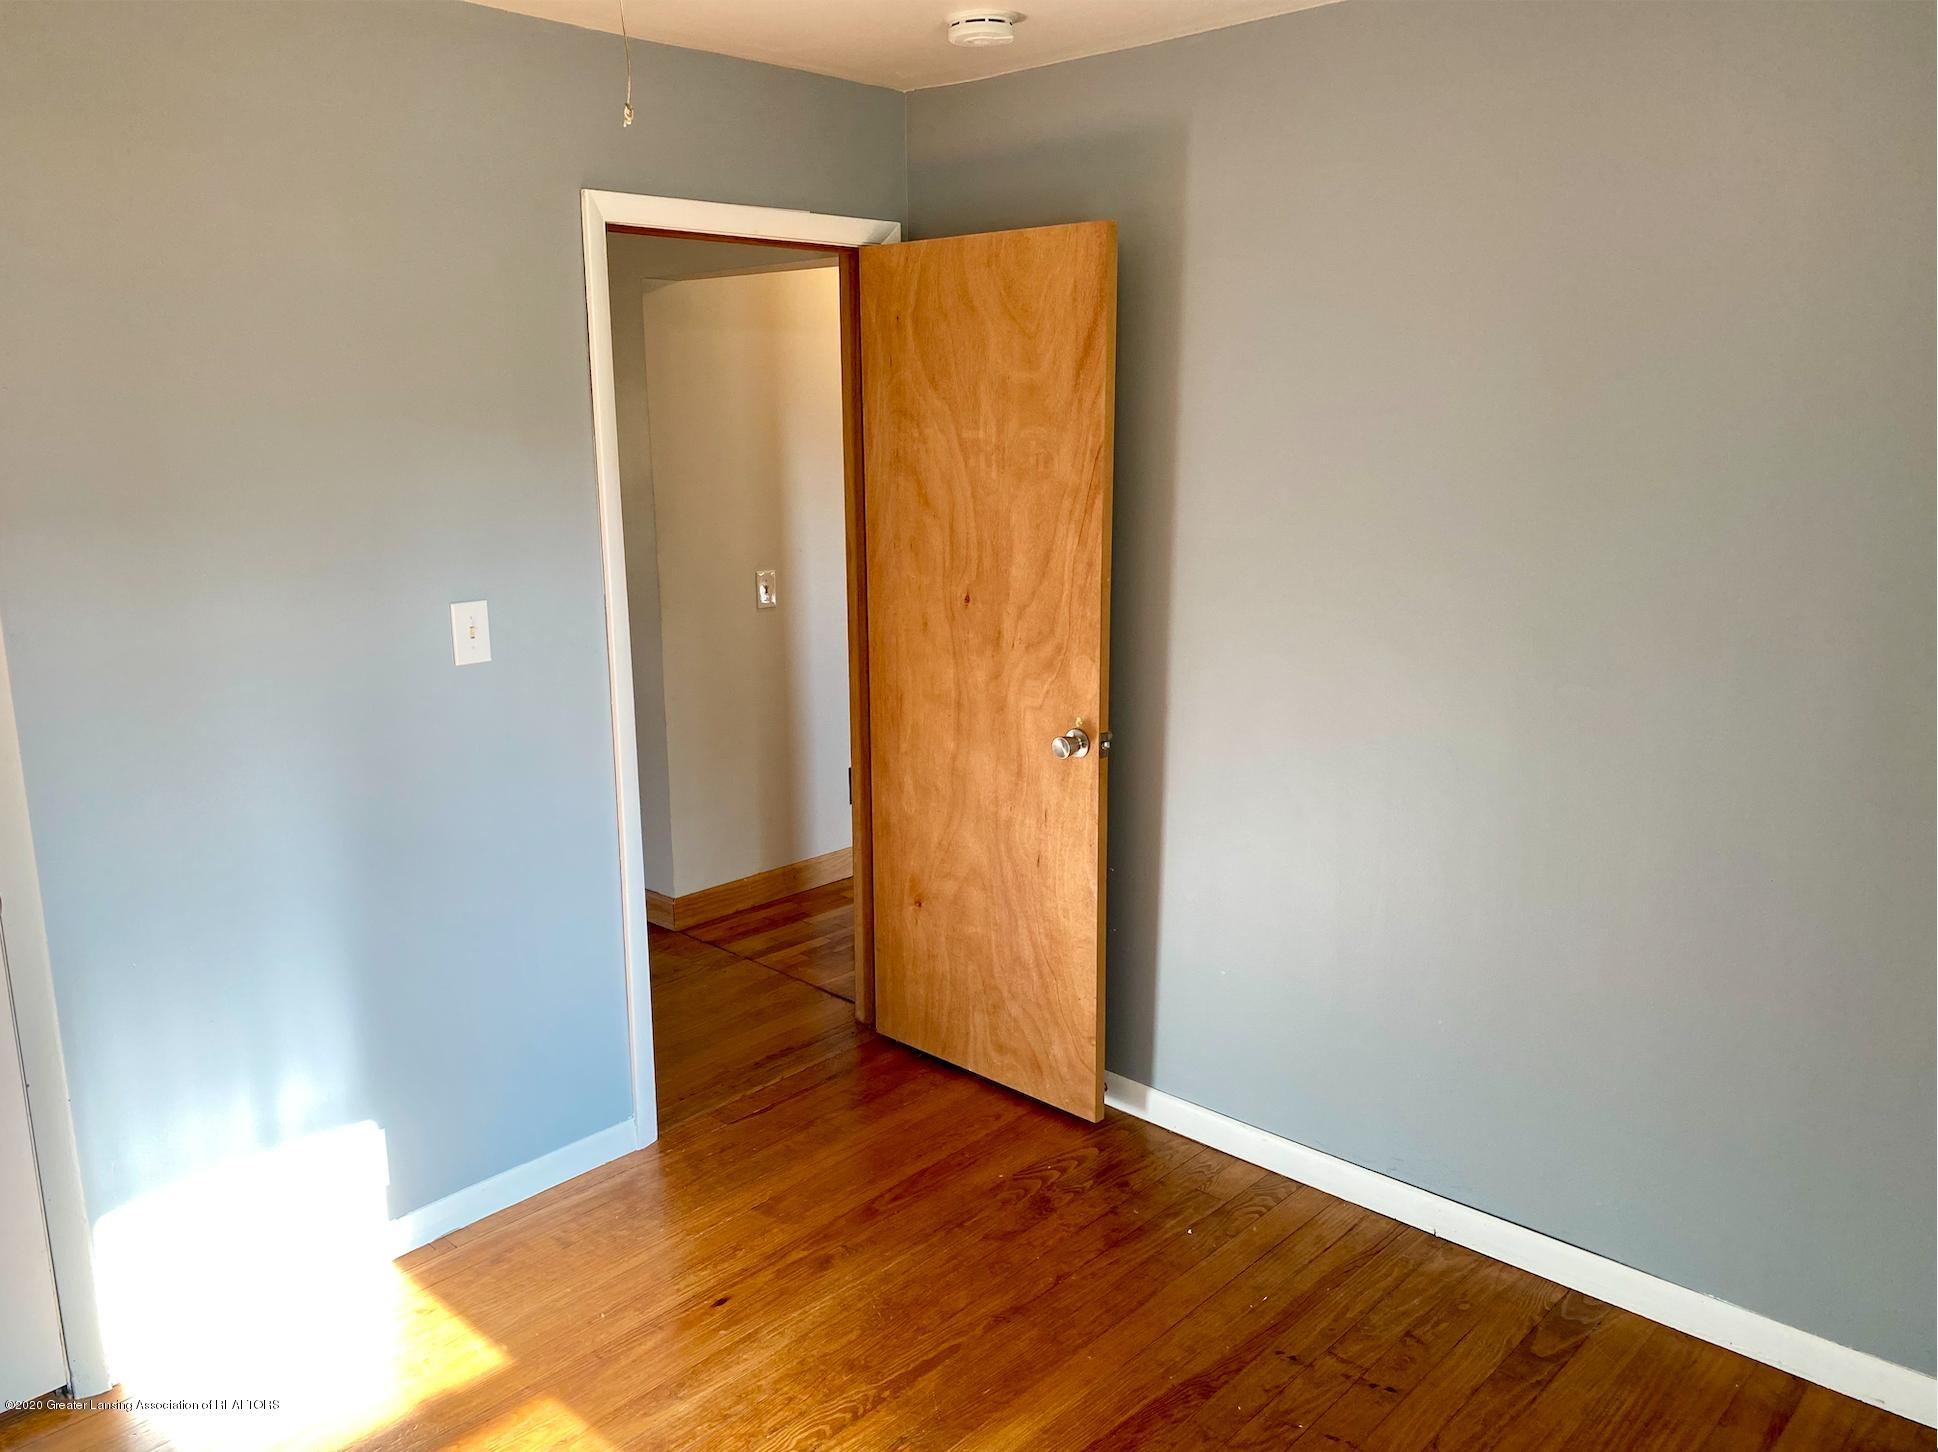 1505 Guenther Ave - Bedroom 2 - 25